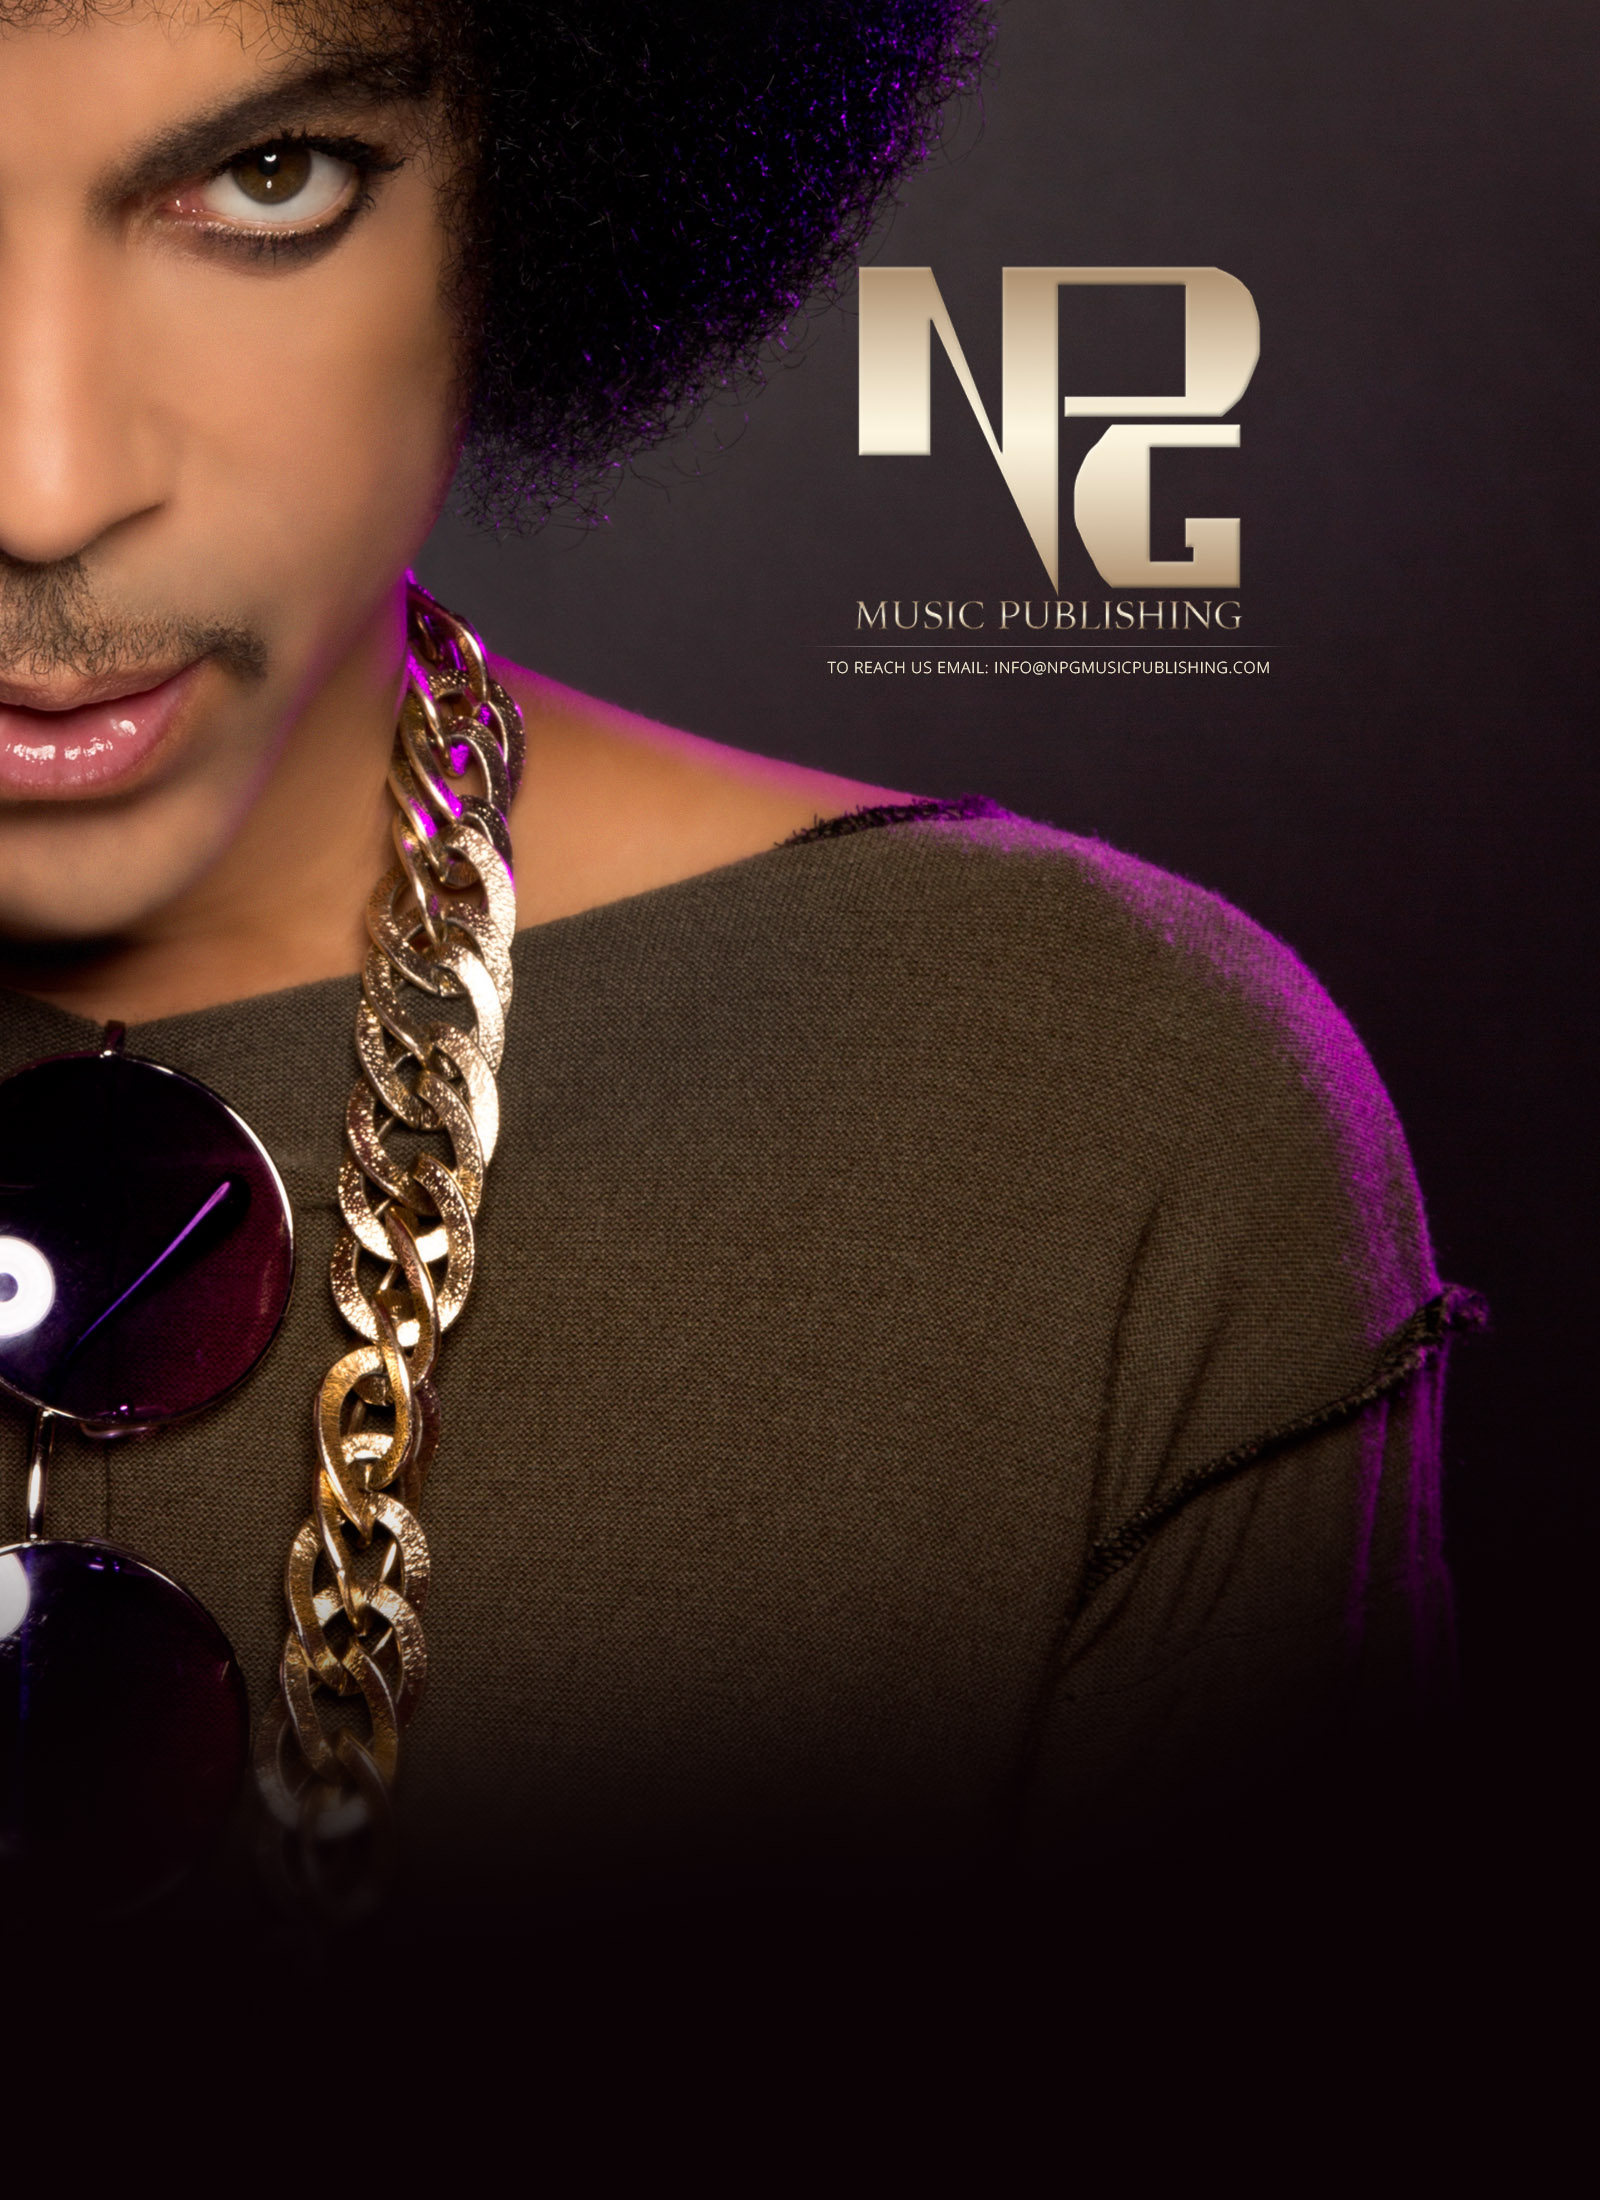 NPG Music Publishing to oversee Prince's music legacy